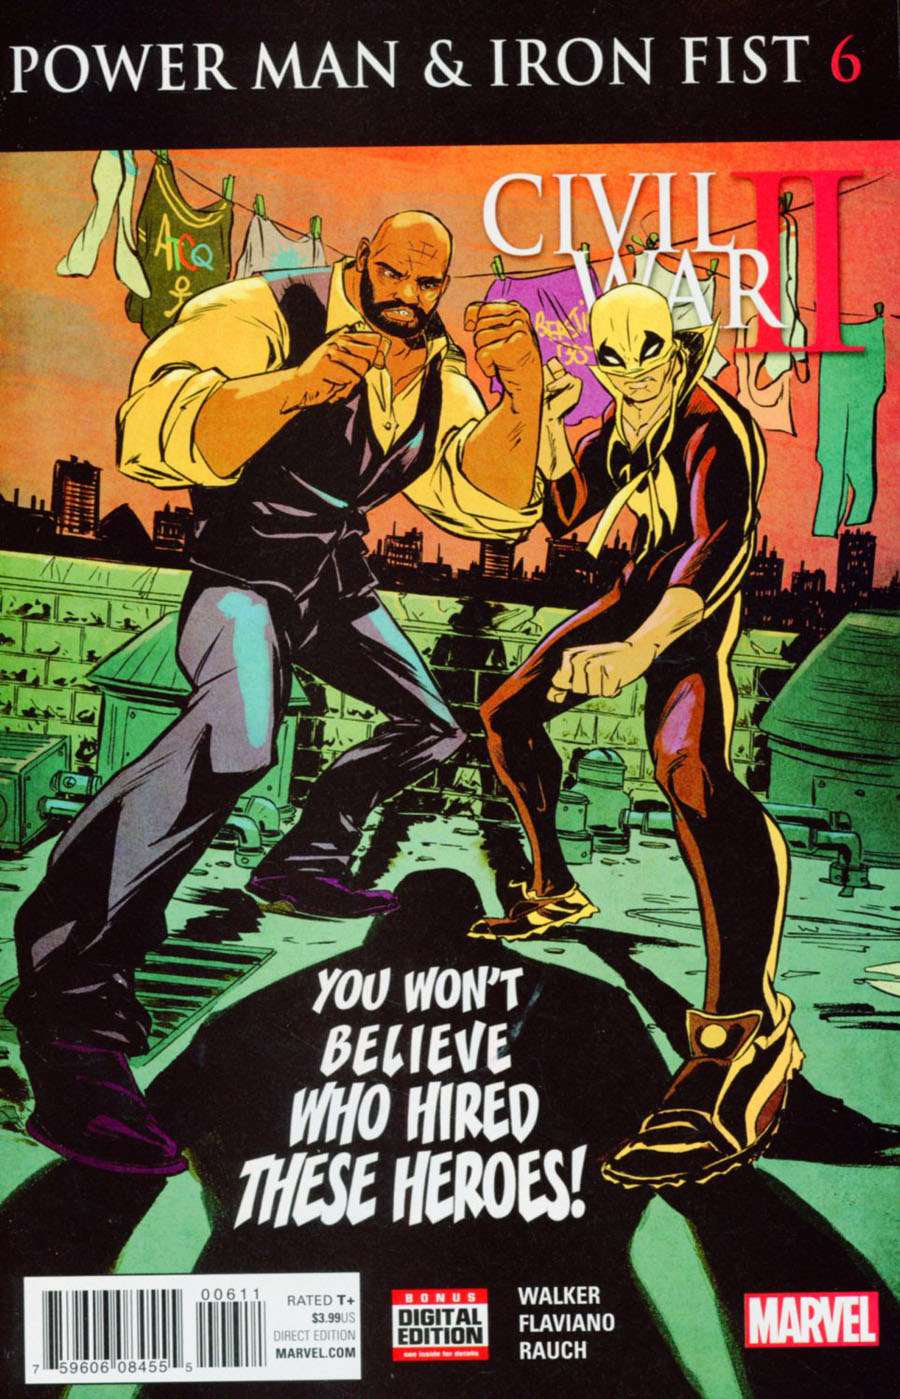 Power Man And Iron Fist Vol 3 #6 Cover A Regular Sanford Greene Cover (Civil War II Tie-In)